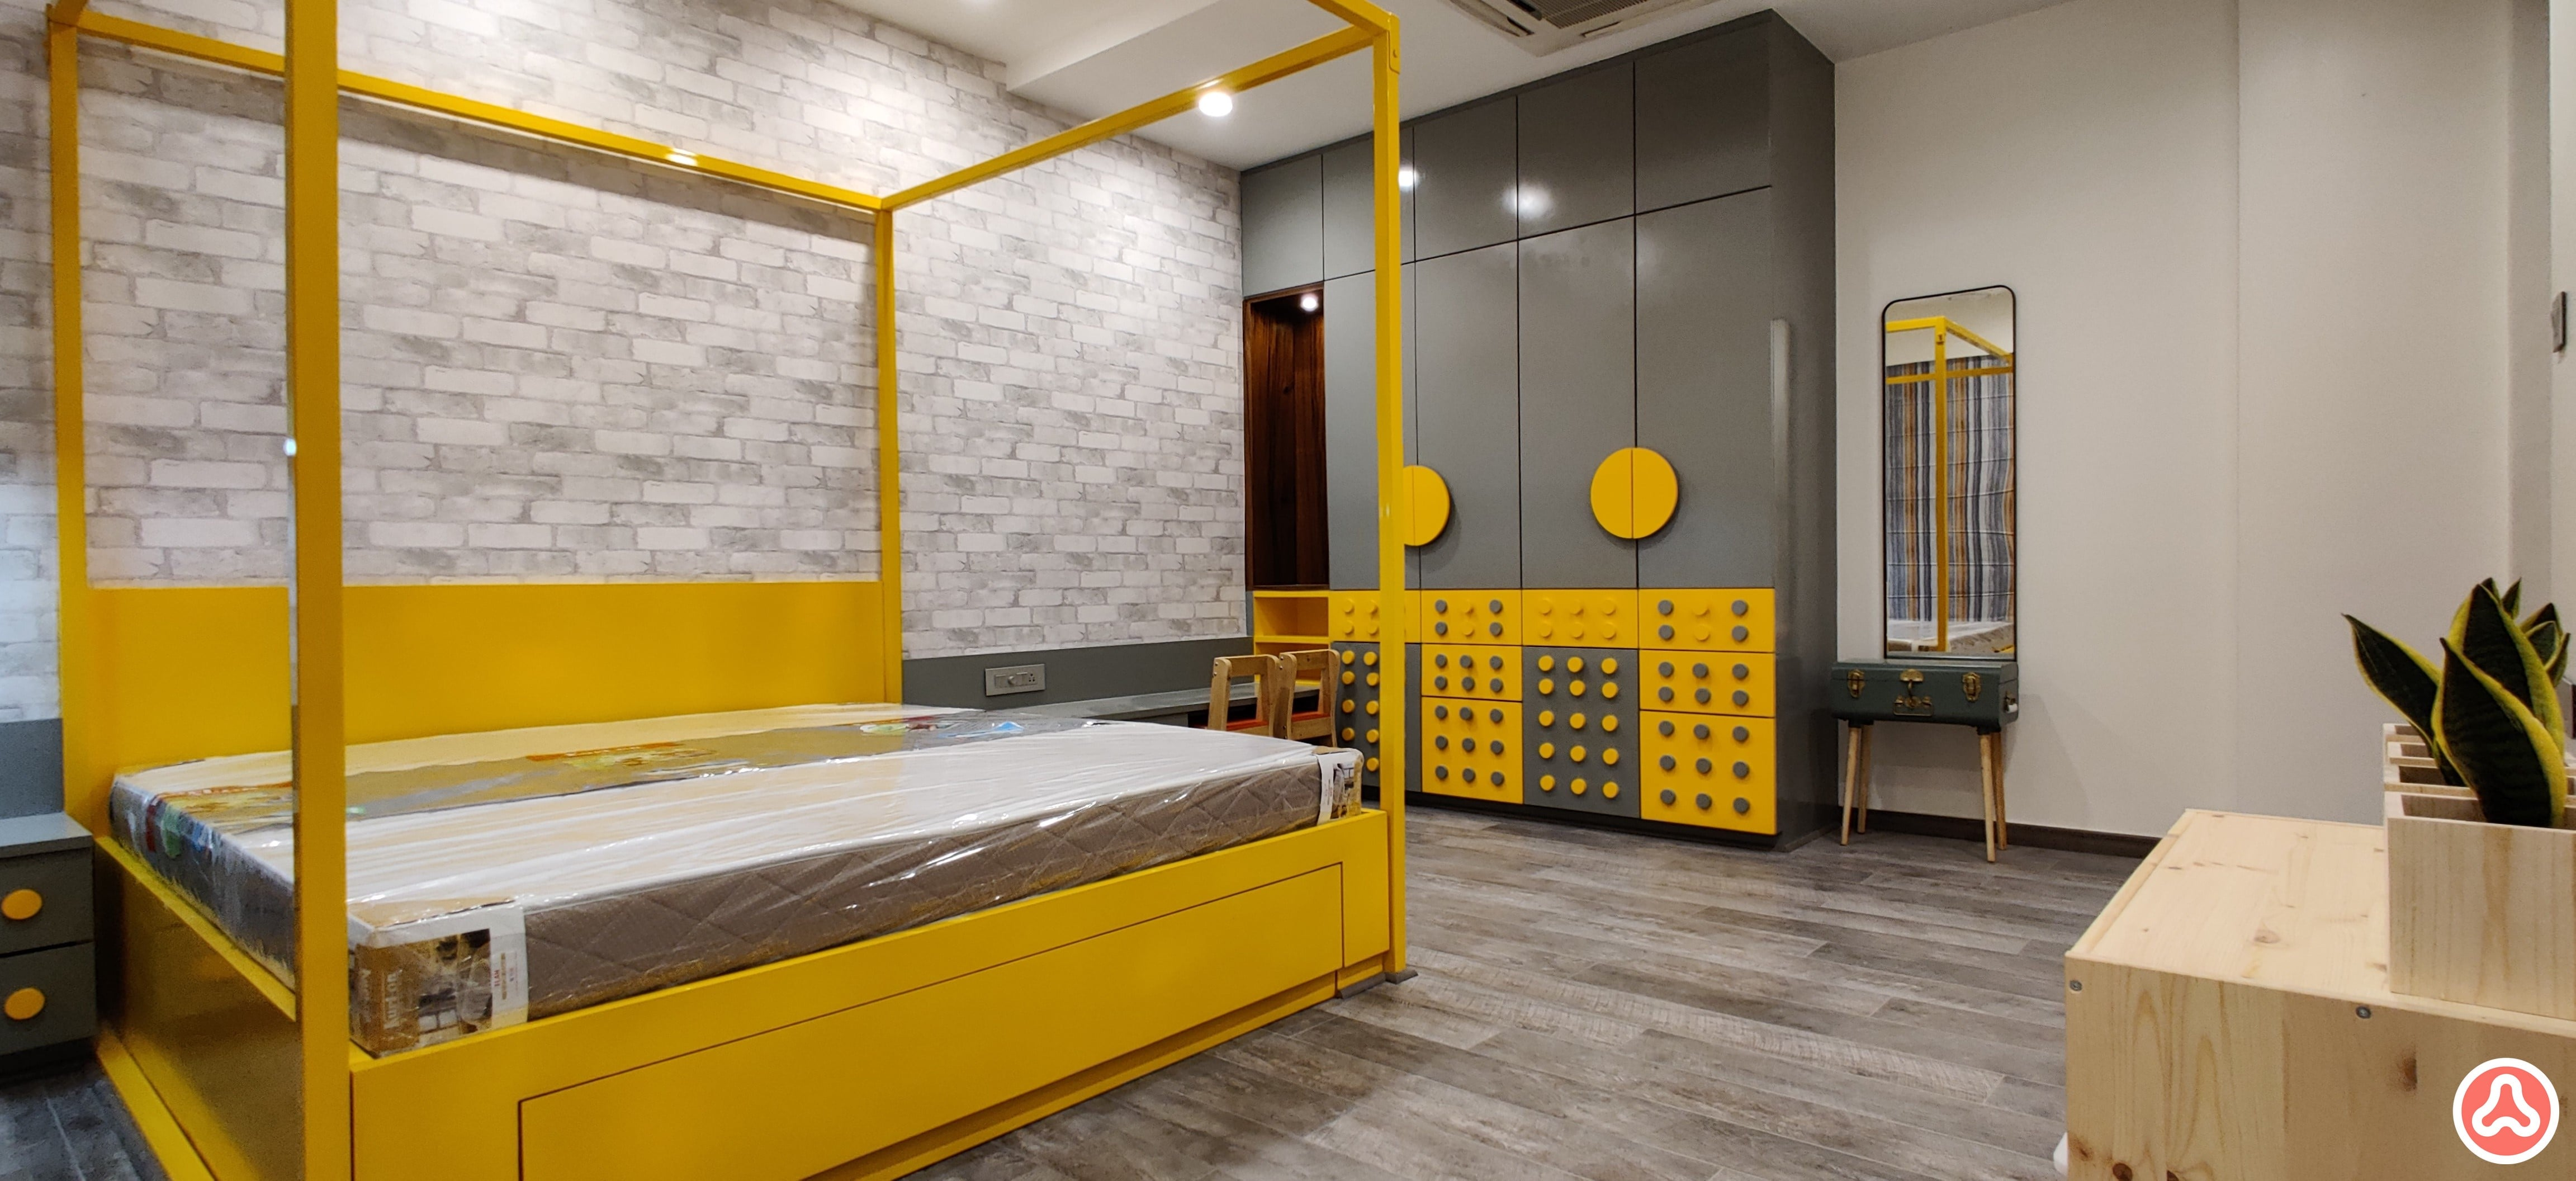 Kids bedroom in yellow lego themed